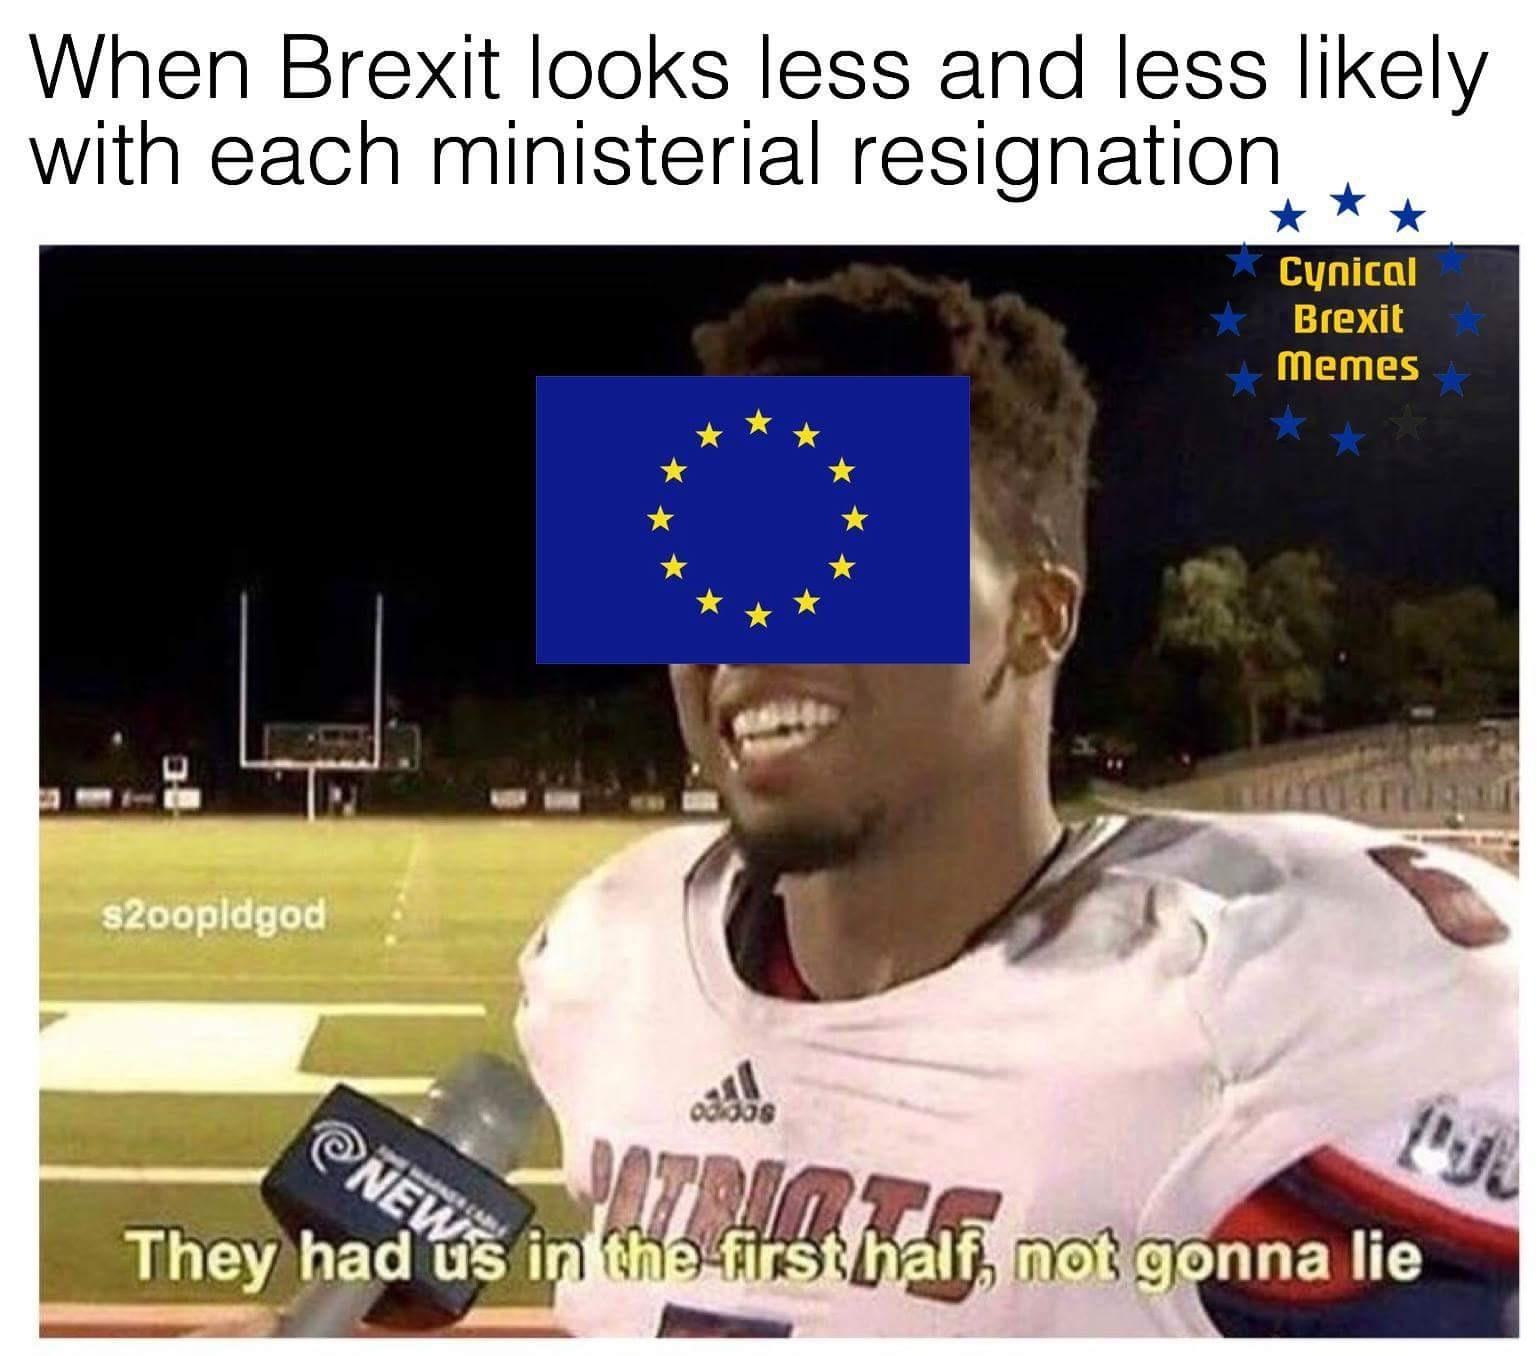 Cynical Brexit | They Had Us In the First Half | Know Your Meme